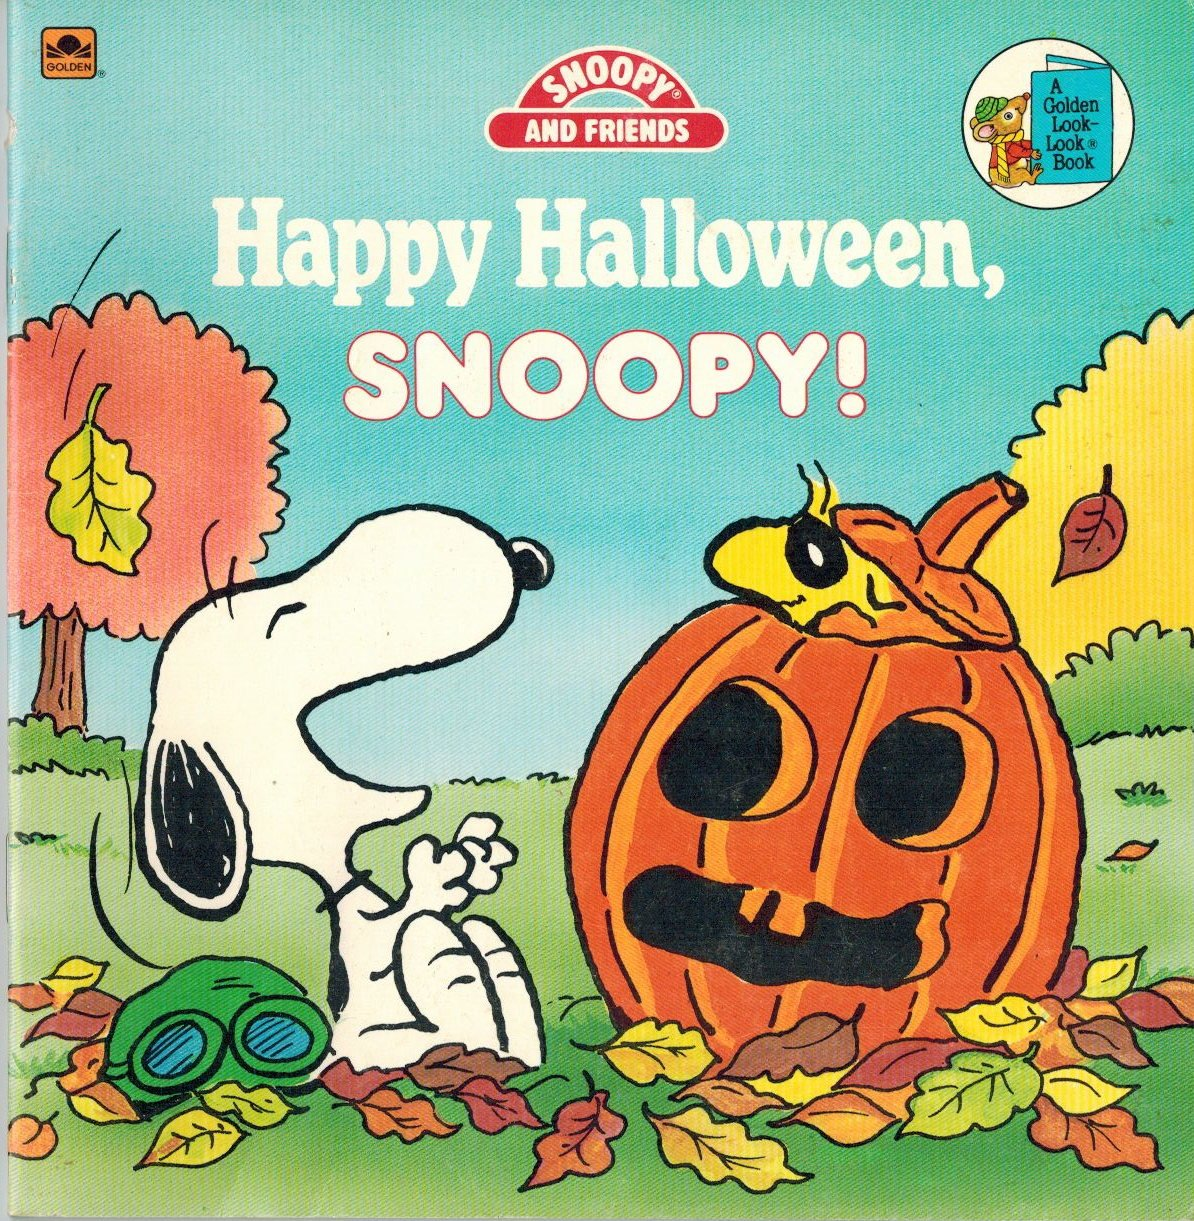 Happy Halloween Snoopy Golden Books 9780307119742 Amazon